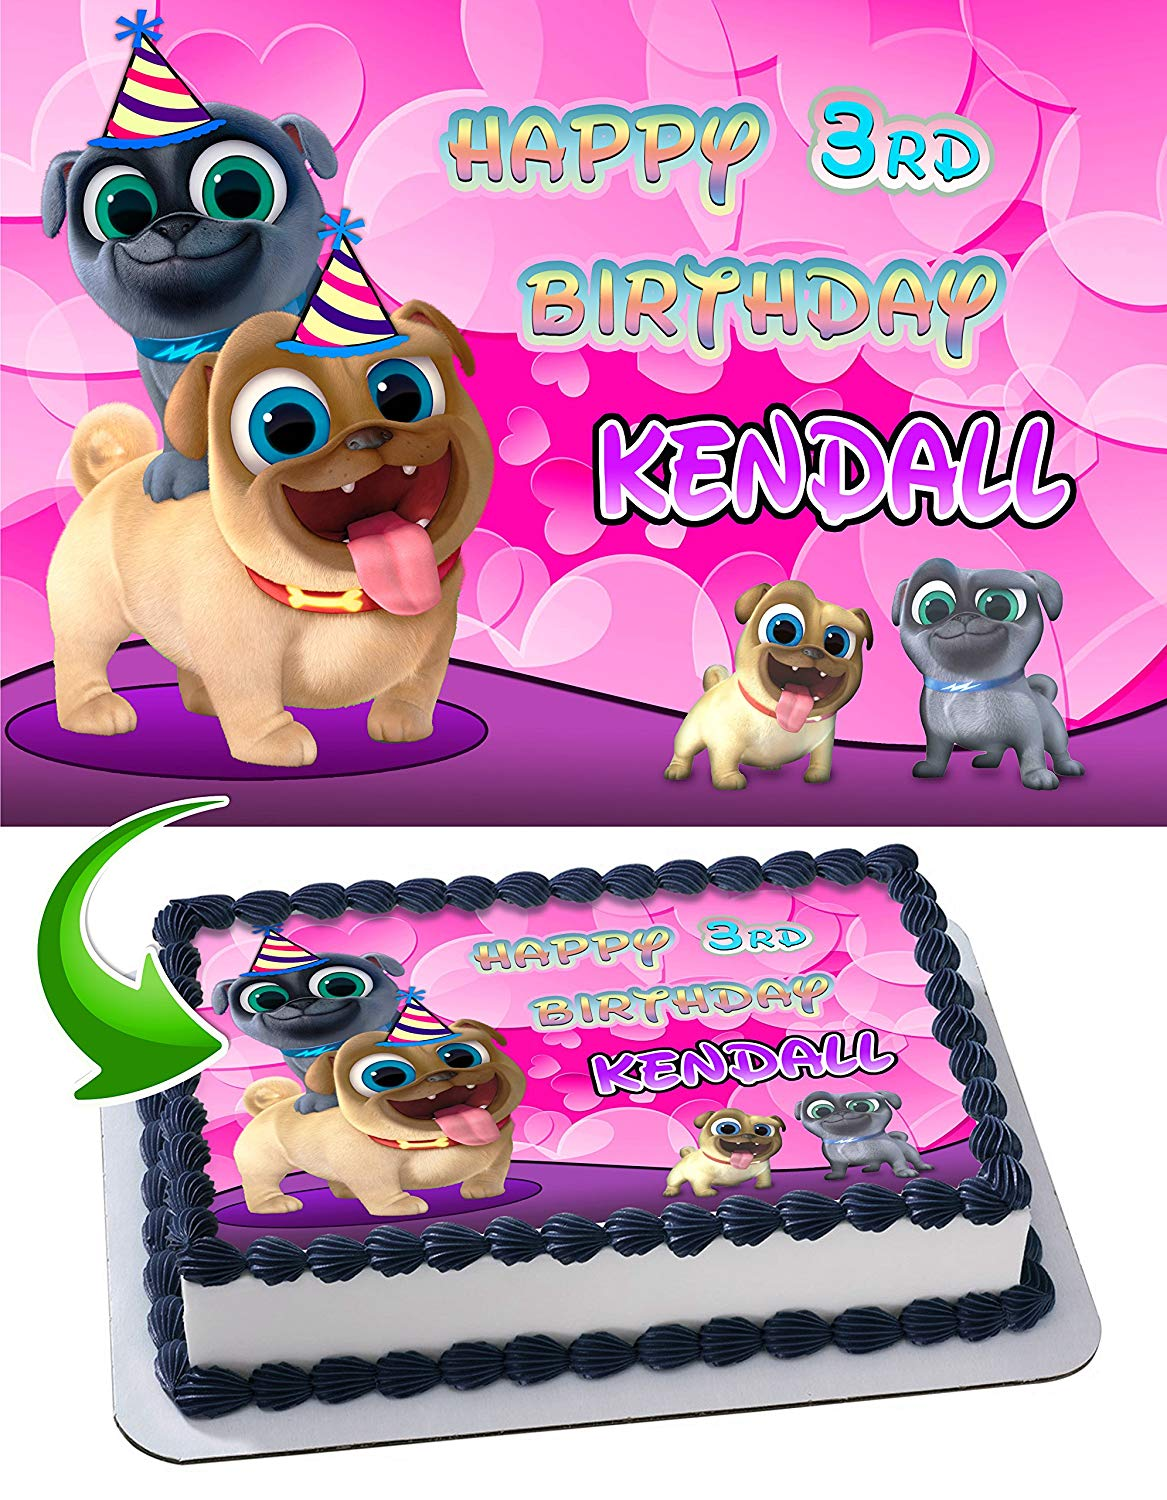 Puppy Dog Pals Birthday Party Puppy Dog Pals Girls Birthday Party Puppy Dog Pals Letters Puppy Dog Pals Girls Party Puppy Dog Pals Invites Paper Party Supplies Party Decor